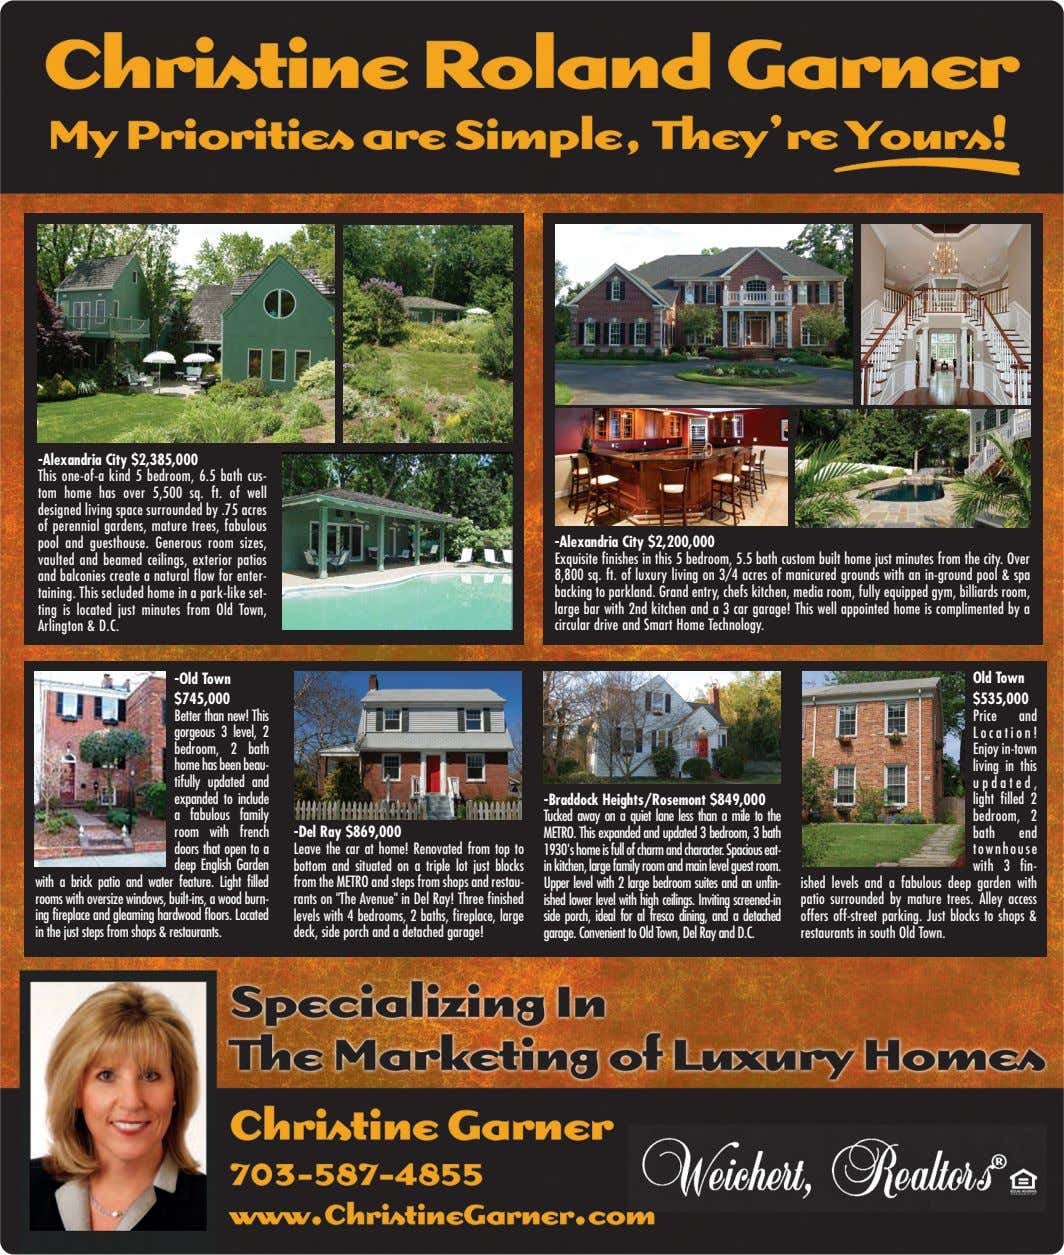 -Alexandria City $2,385,000 This one-of-a kind 5 bedroom, 6.5 bath cus- tom home has over